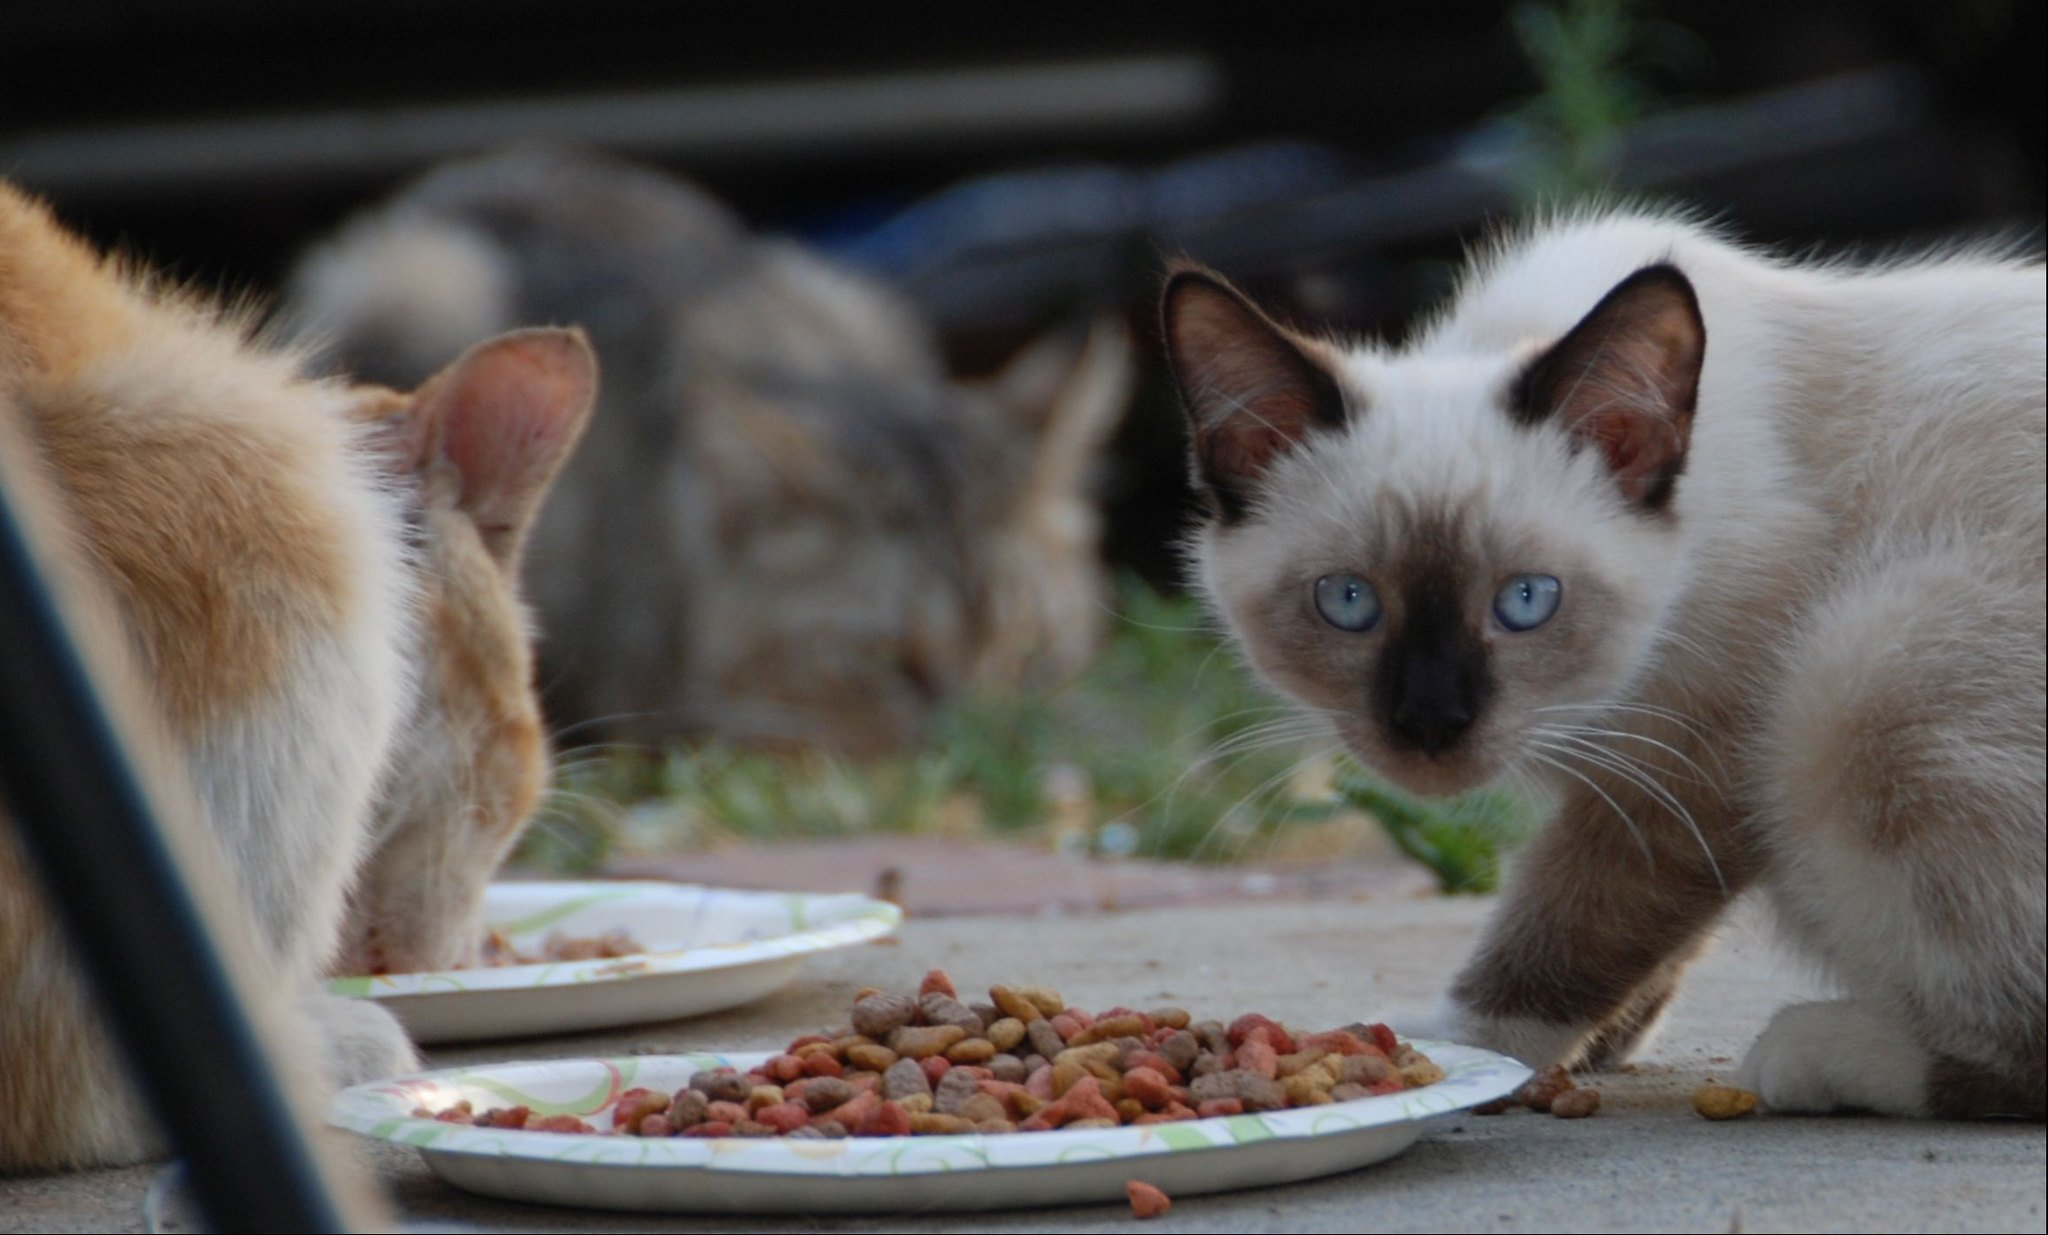 Alimentation des chats | Image: Flickr